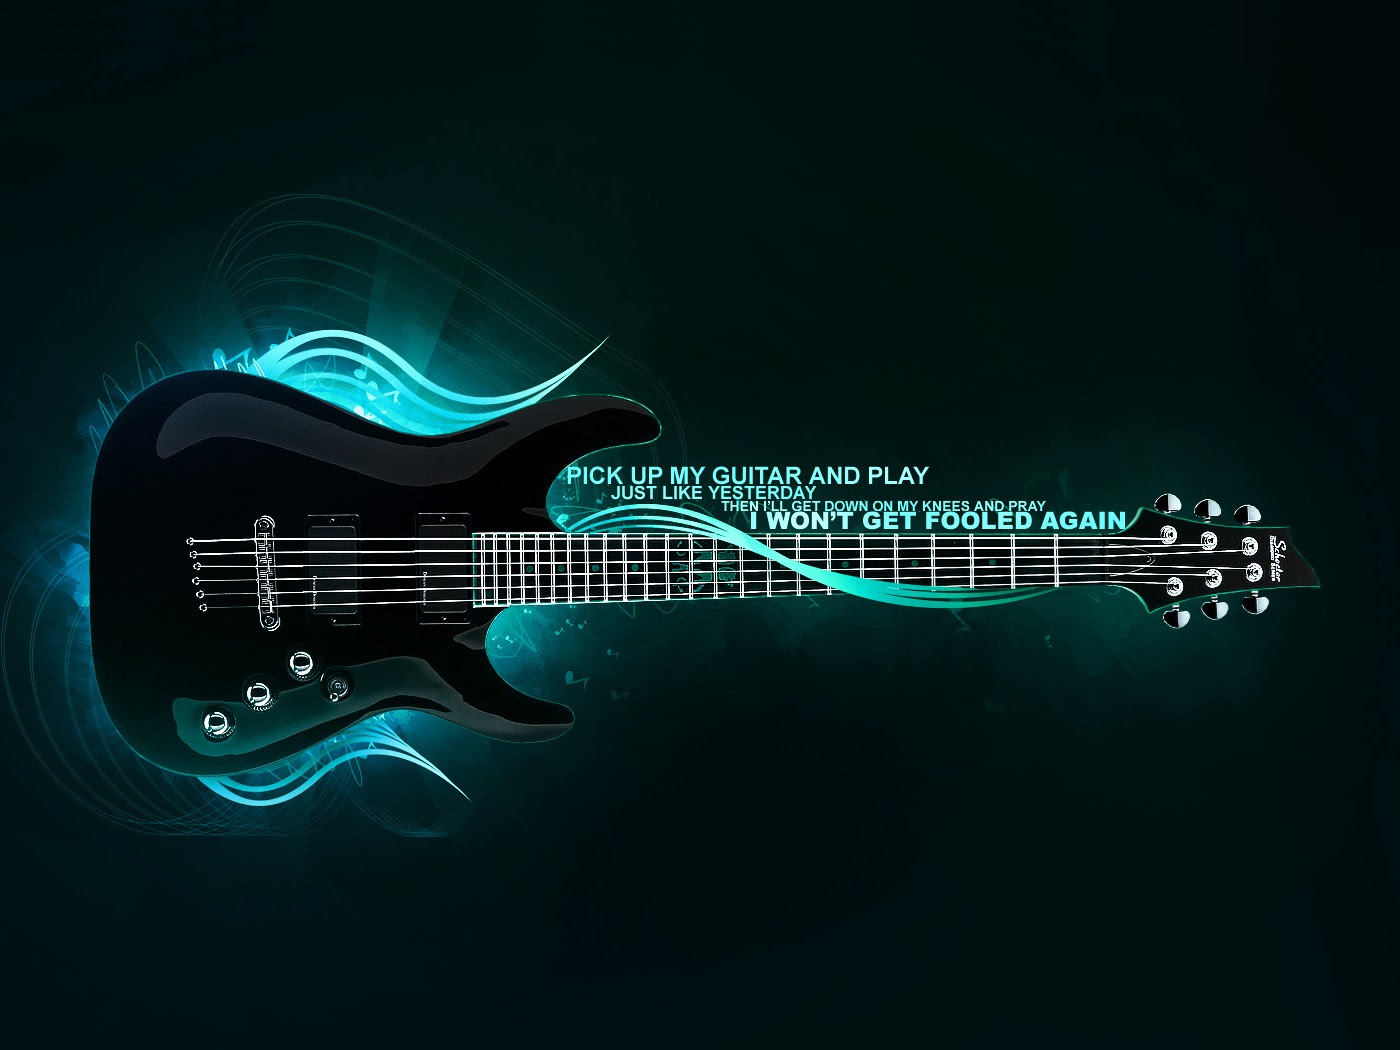 Guitar Quotes Wallpapers Hd Backgrounds Images Pics Photos Free